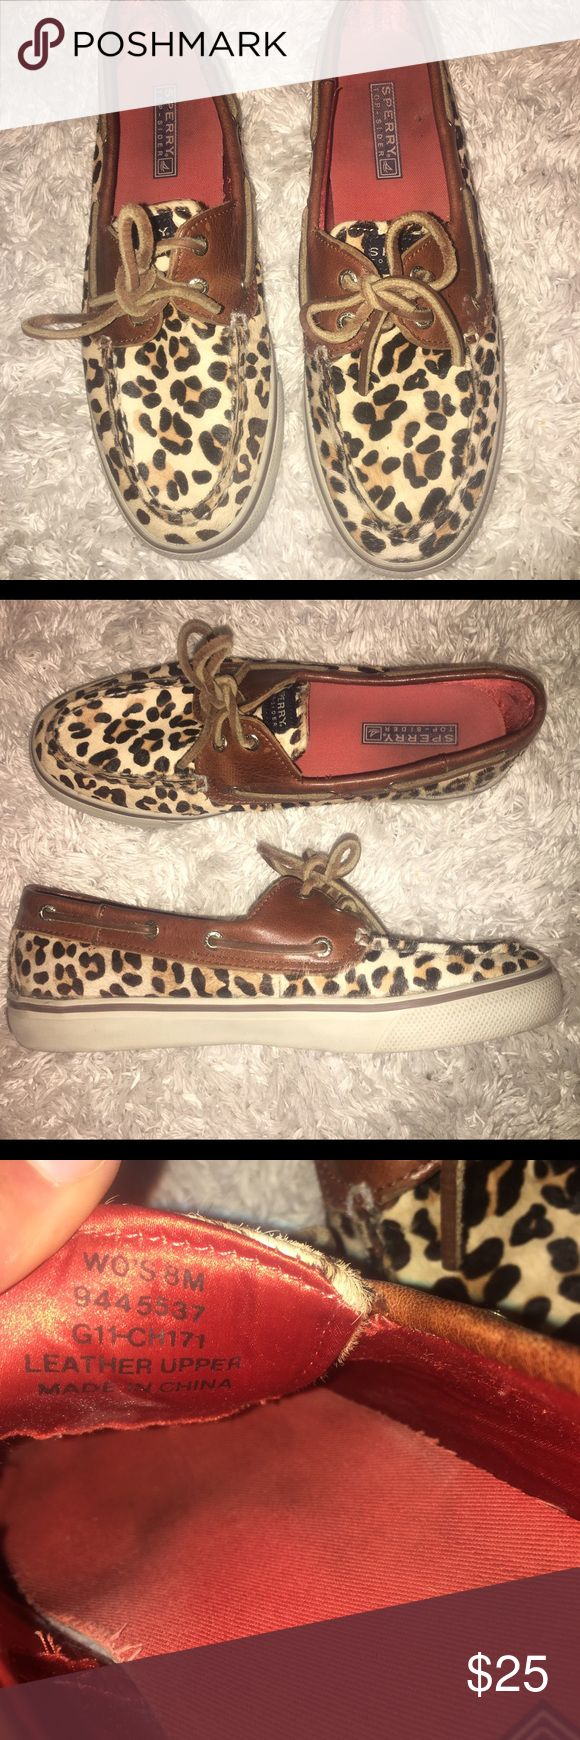 Women's Leopard Print Sperrys Size 8 leopard print sperry topsliders. In good condition. Sperry Shoes Flats & Loafers